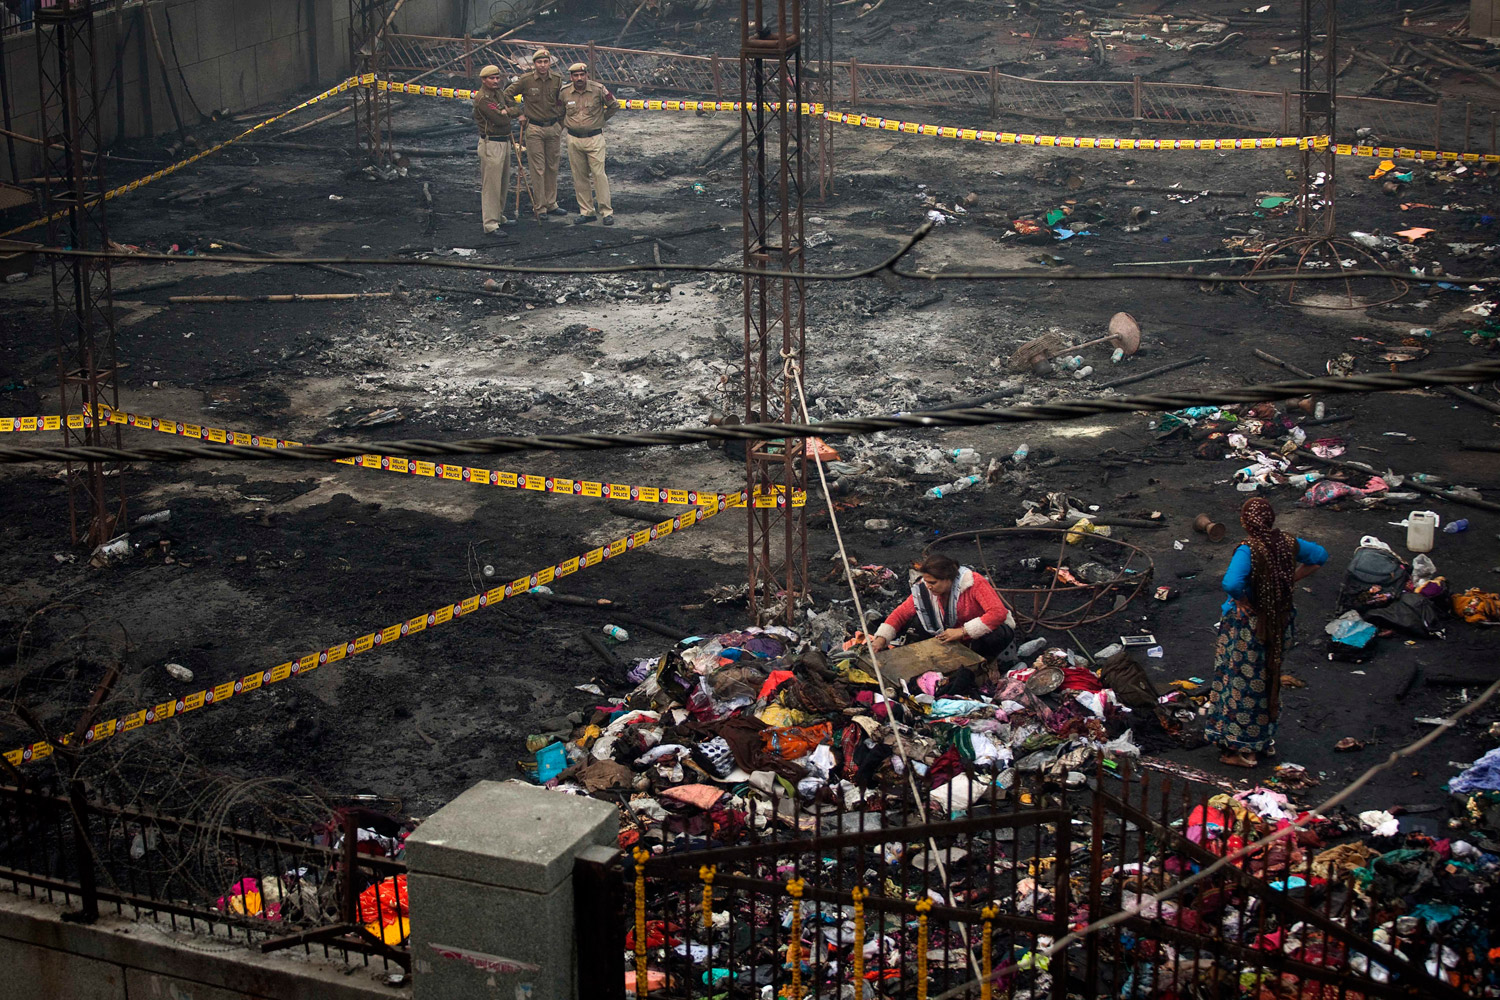 November 21, 2011. Police officers guard the scene as an Indian eunuch looks for valuables at the scene of a fire in New Delhi, India. The blaze, which killed more than a dozen people, happened during a gathering of thousands of eunuchs at a prayer ceremony and feast held once every five years at a fairground in the Nandnagary neighborhood of east Delhi.